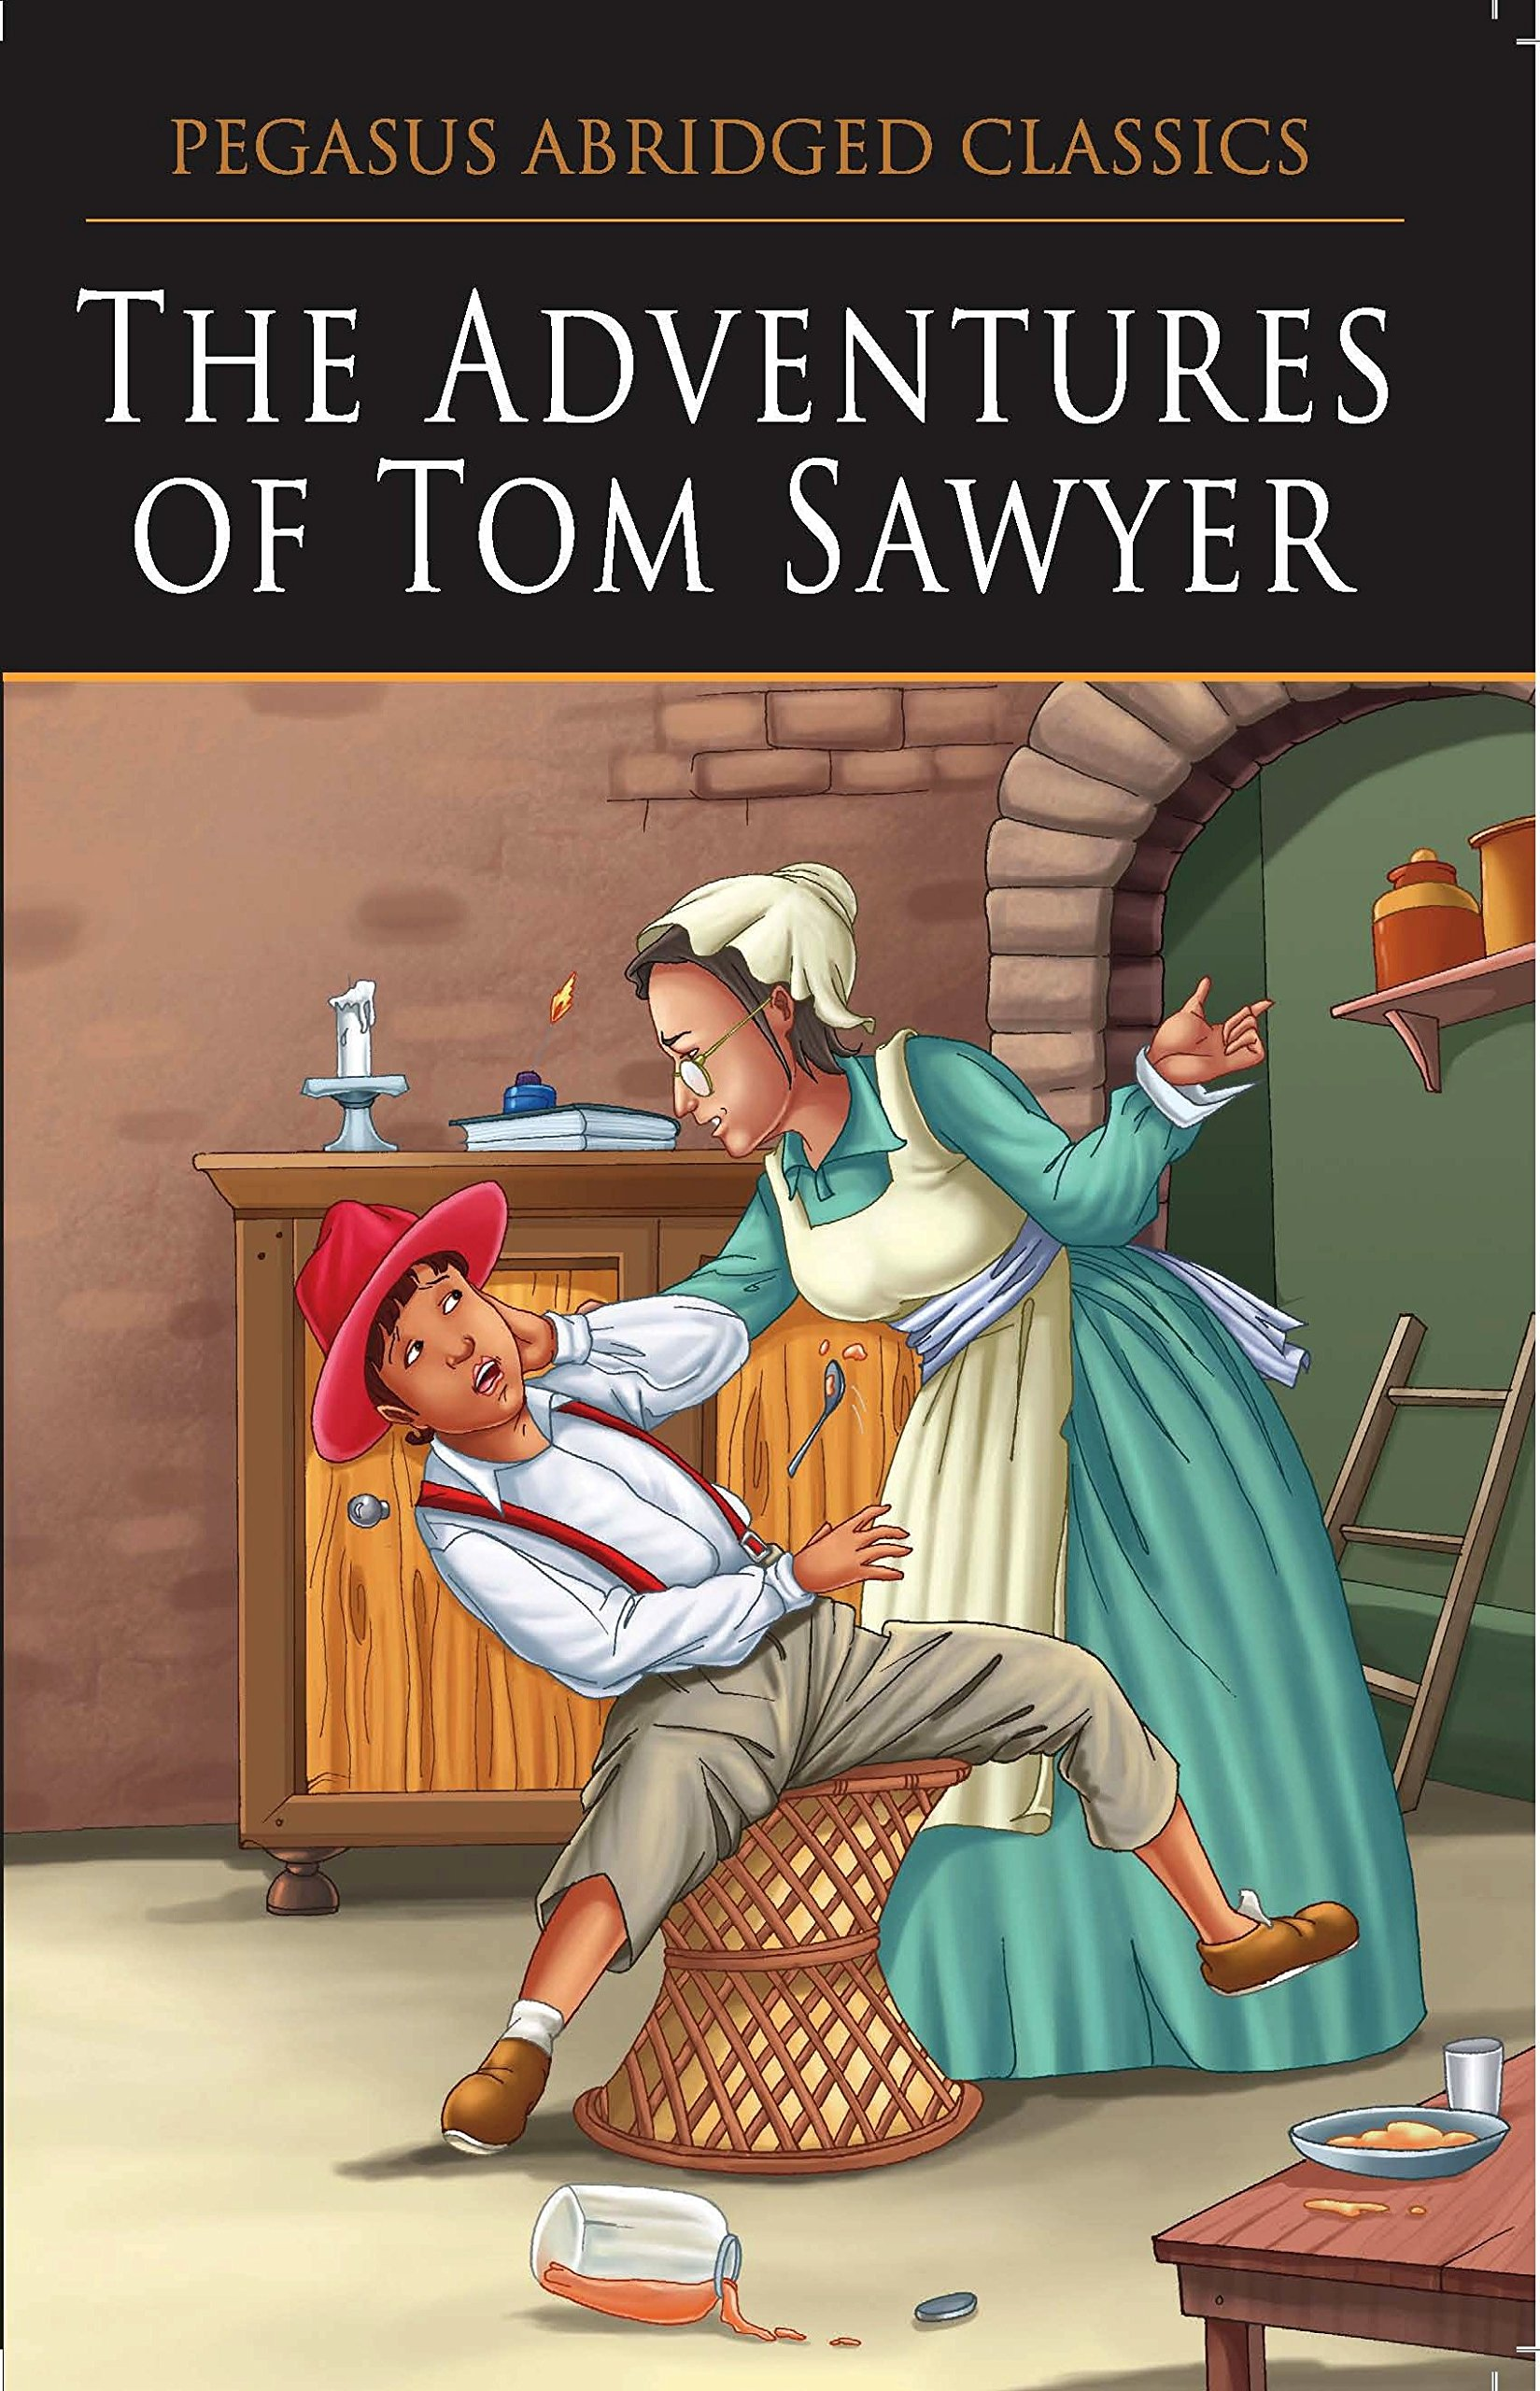 an analysis of tom sawyer in the book adventures of tom sawyer The adventures of tom sawyer: the adventures of tom sawyer by mark twain is an 1876 novel about a young boy growing up along the mississippi river.